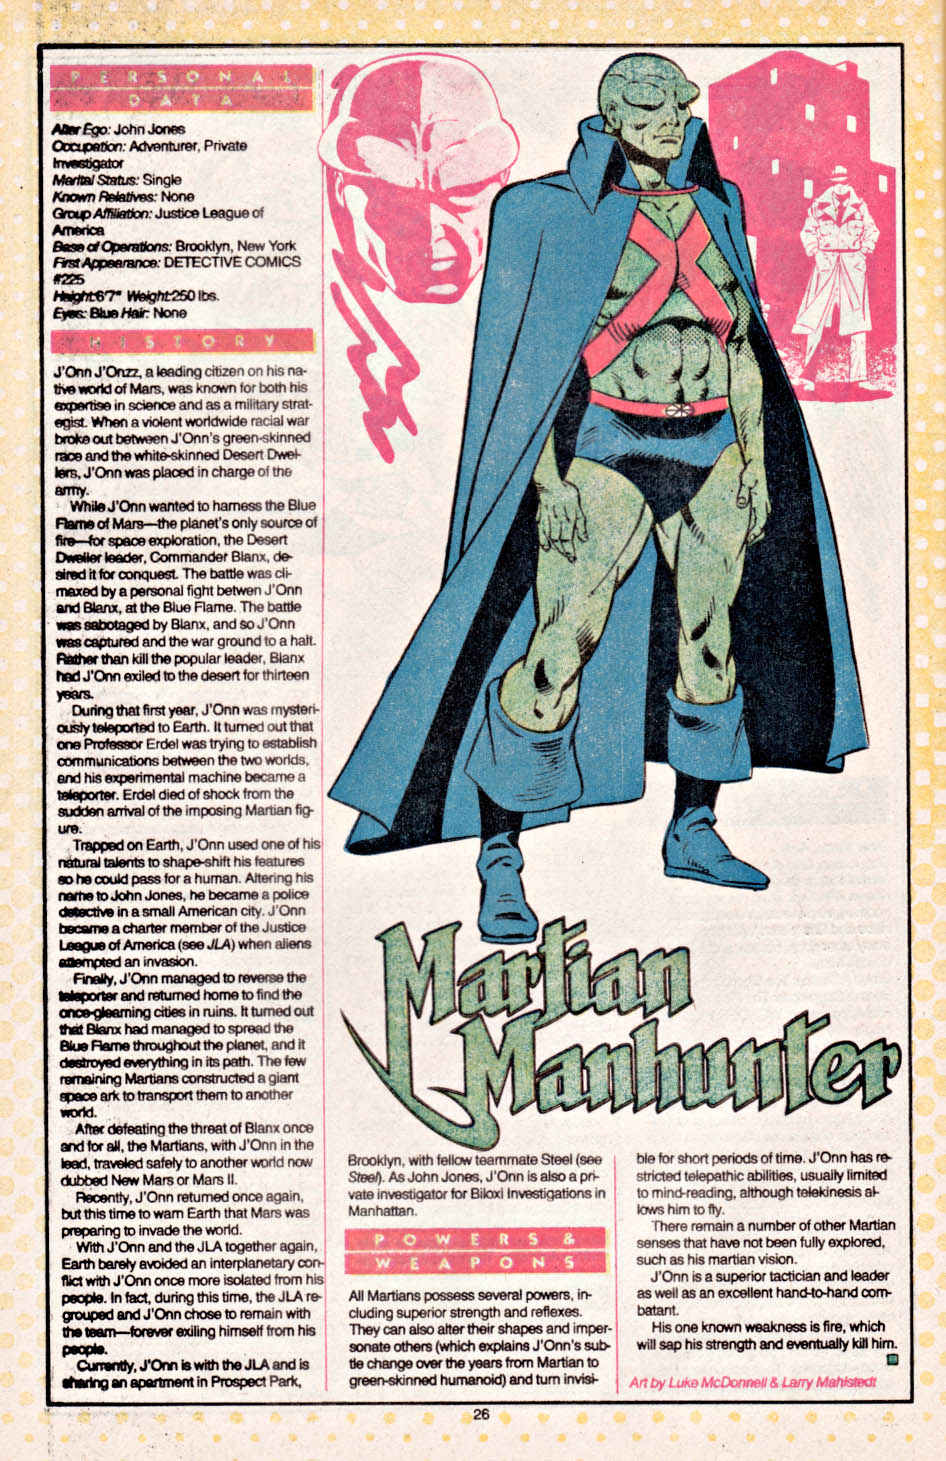 Martian Manhunter from Who's Who by Luke McDonnell